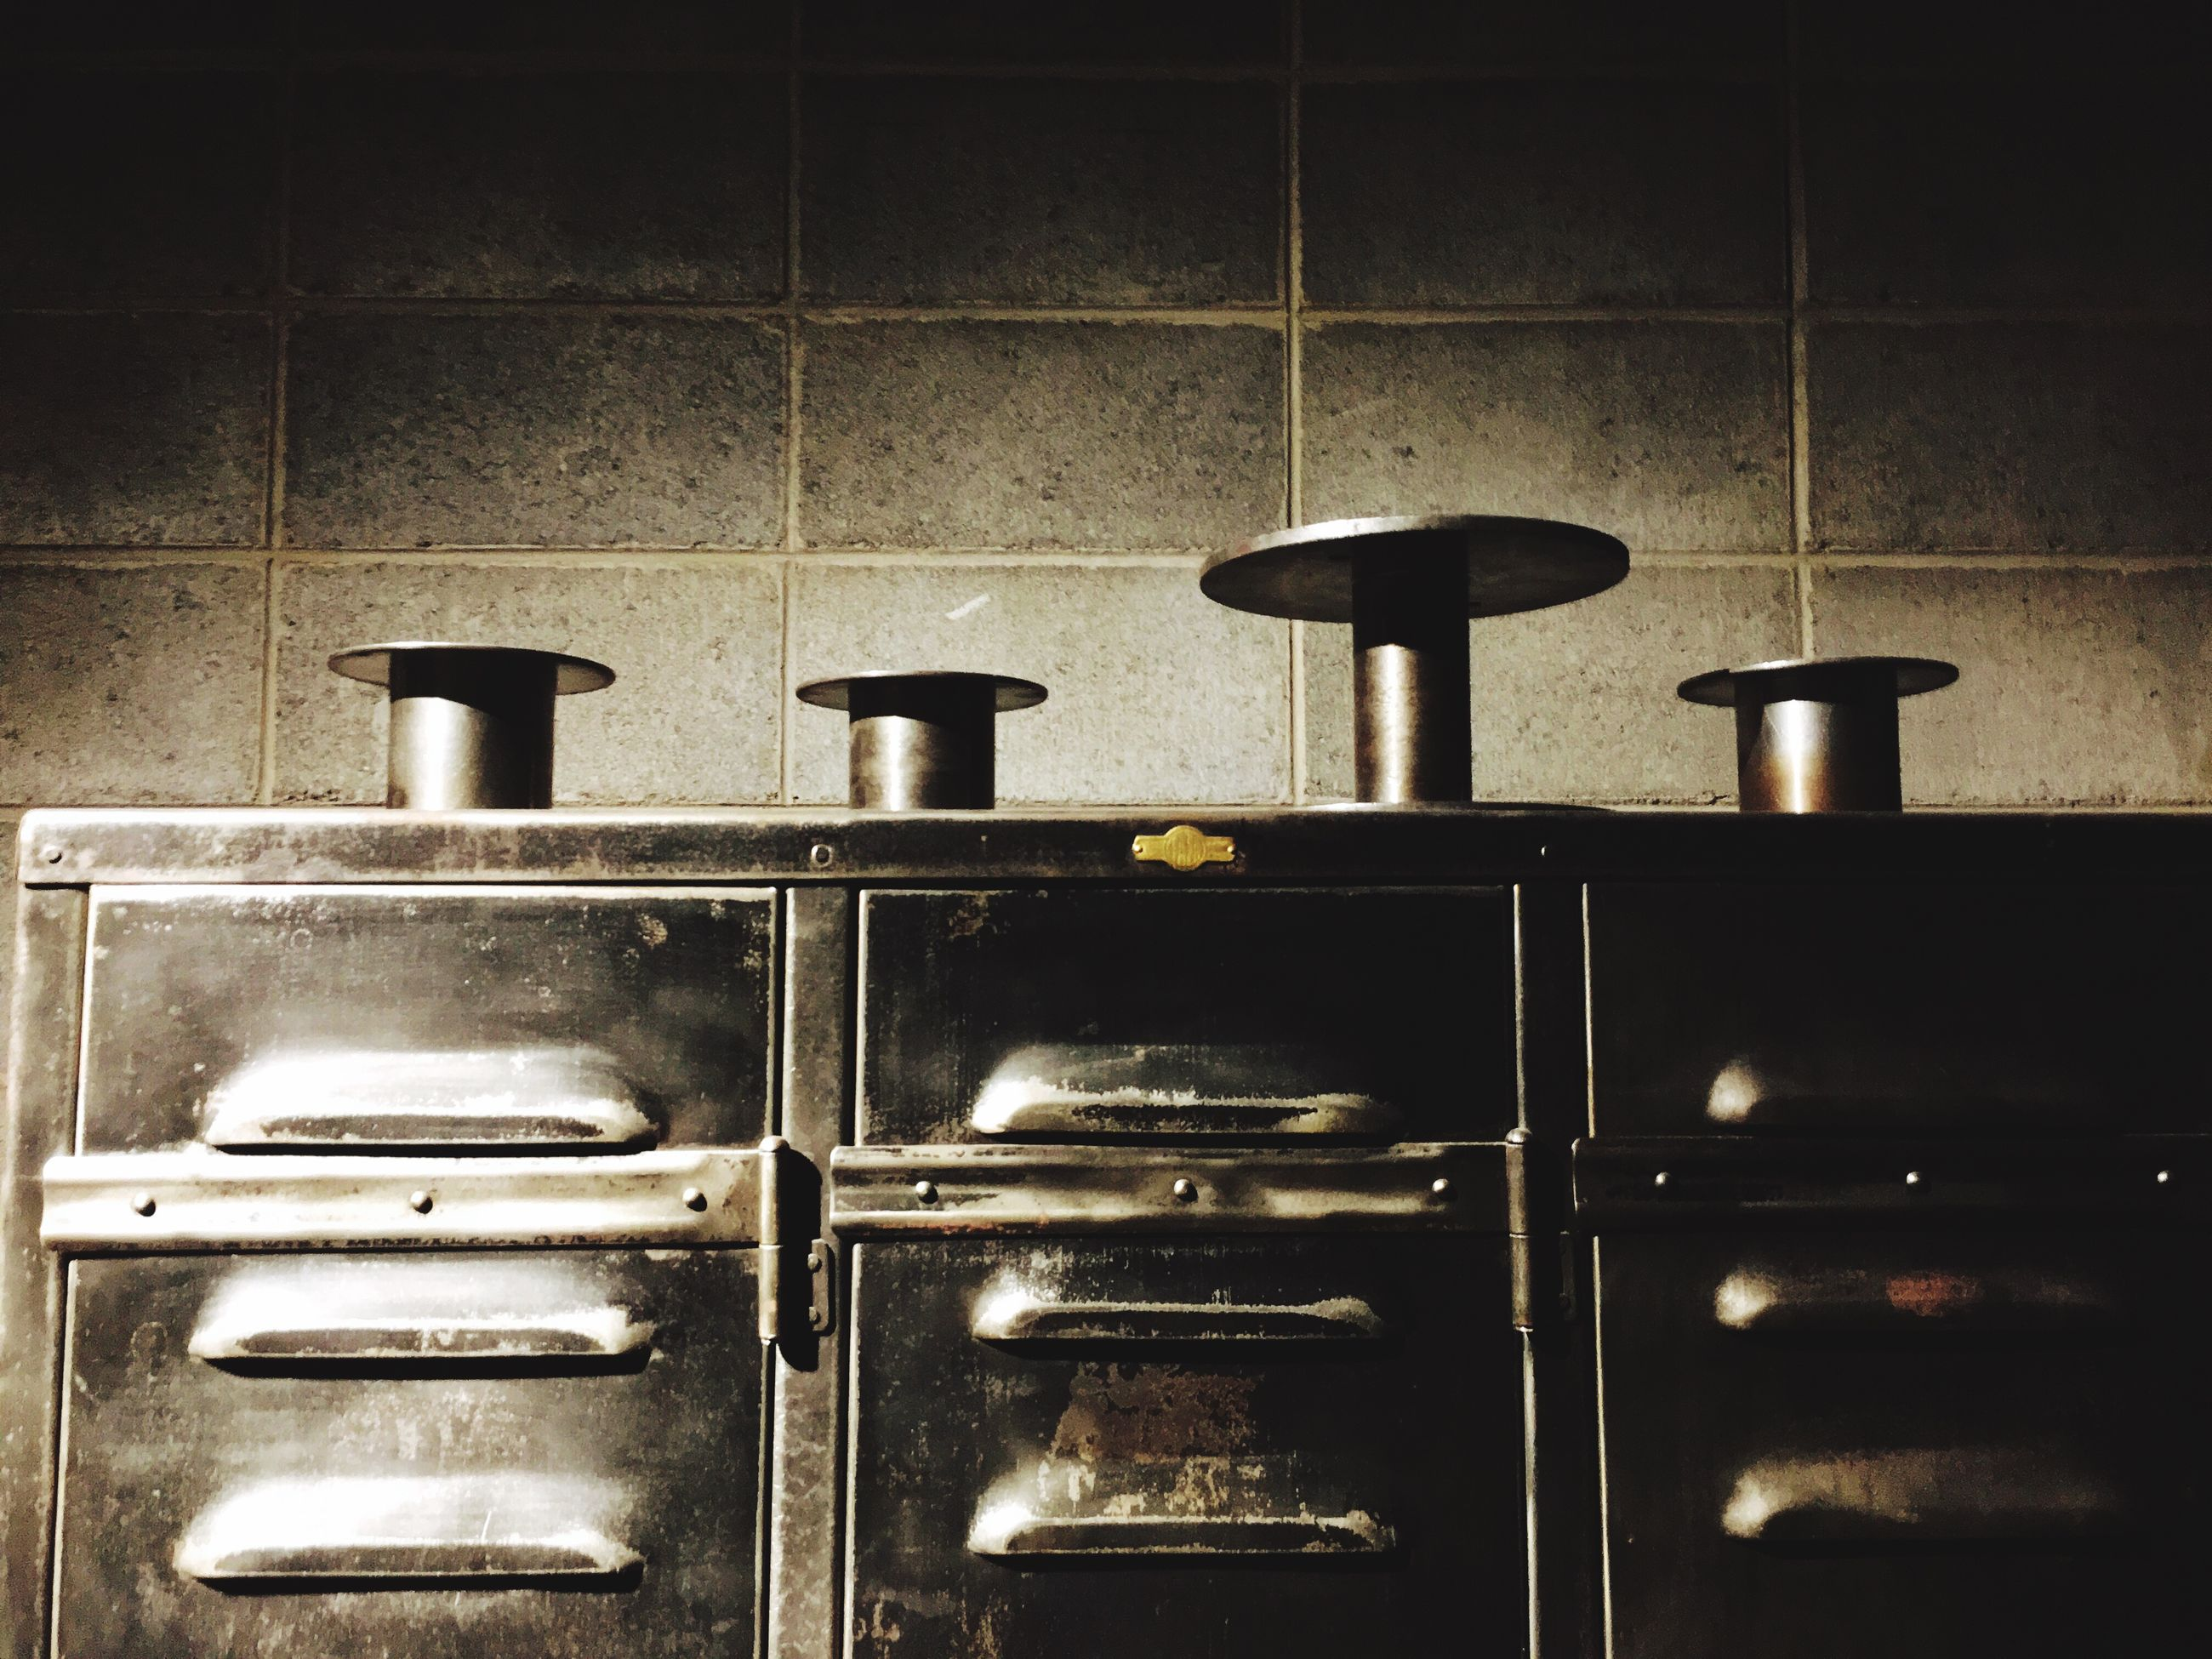 indoors, no people, metal, wall - building feature, still life, close-up, old, household equipment, domestic room, architecture, kitchen utensil, group of objects, wood - material, day, tile, built structure, illuminated, shelf, saucepan